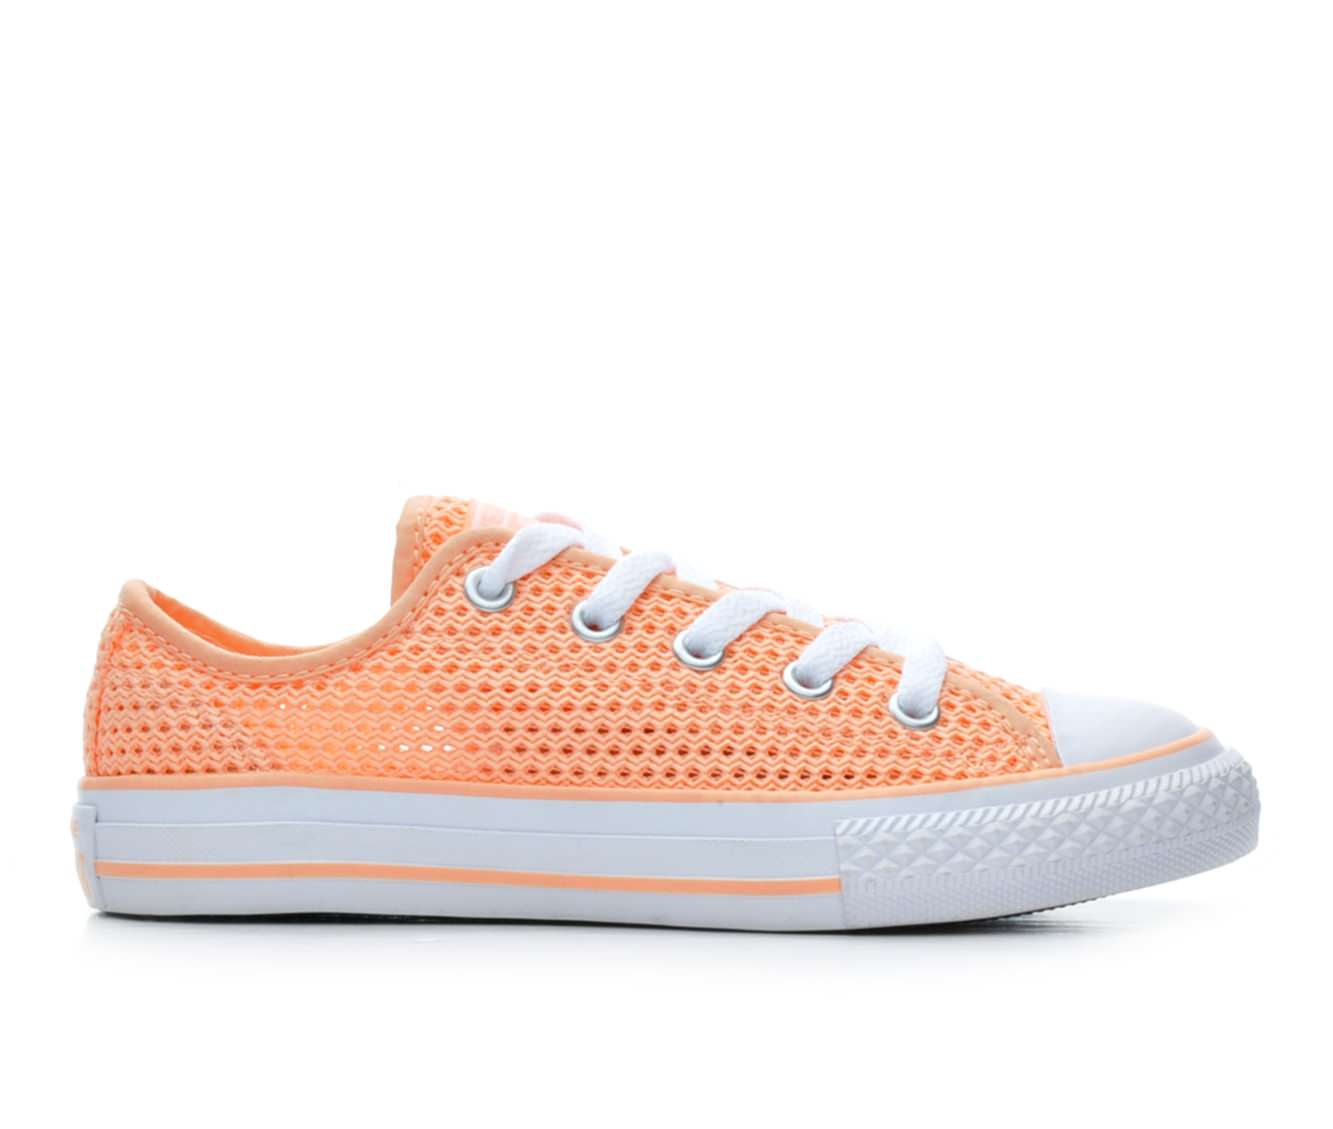 Girls' Converse Chuck Taylor All Star Ox Crochet Sneakers (Orange)